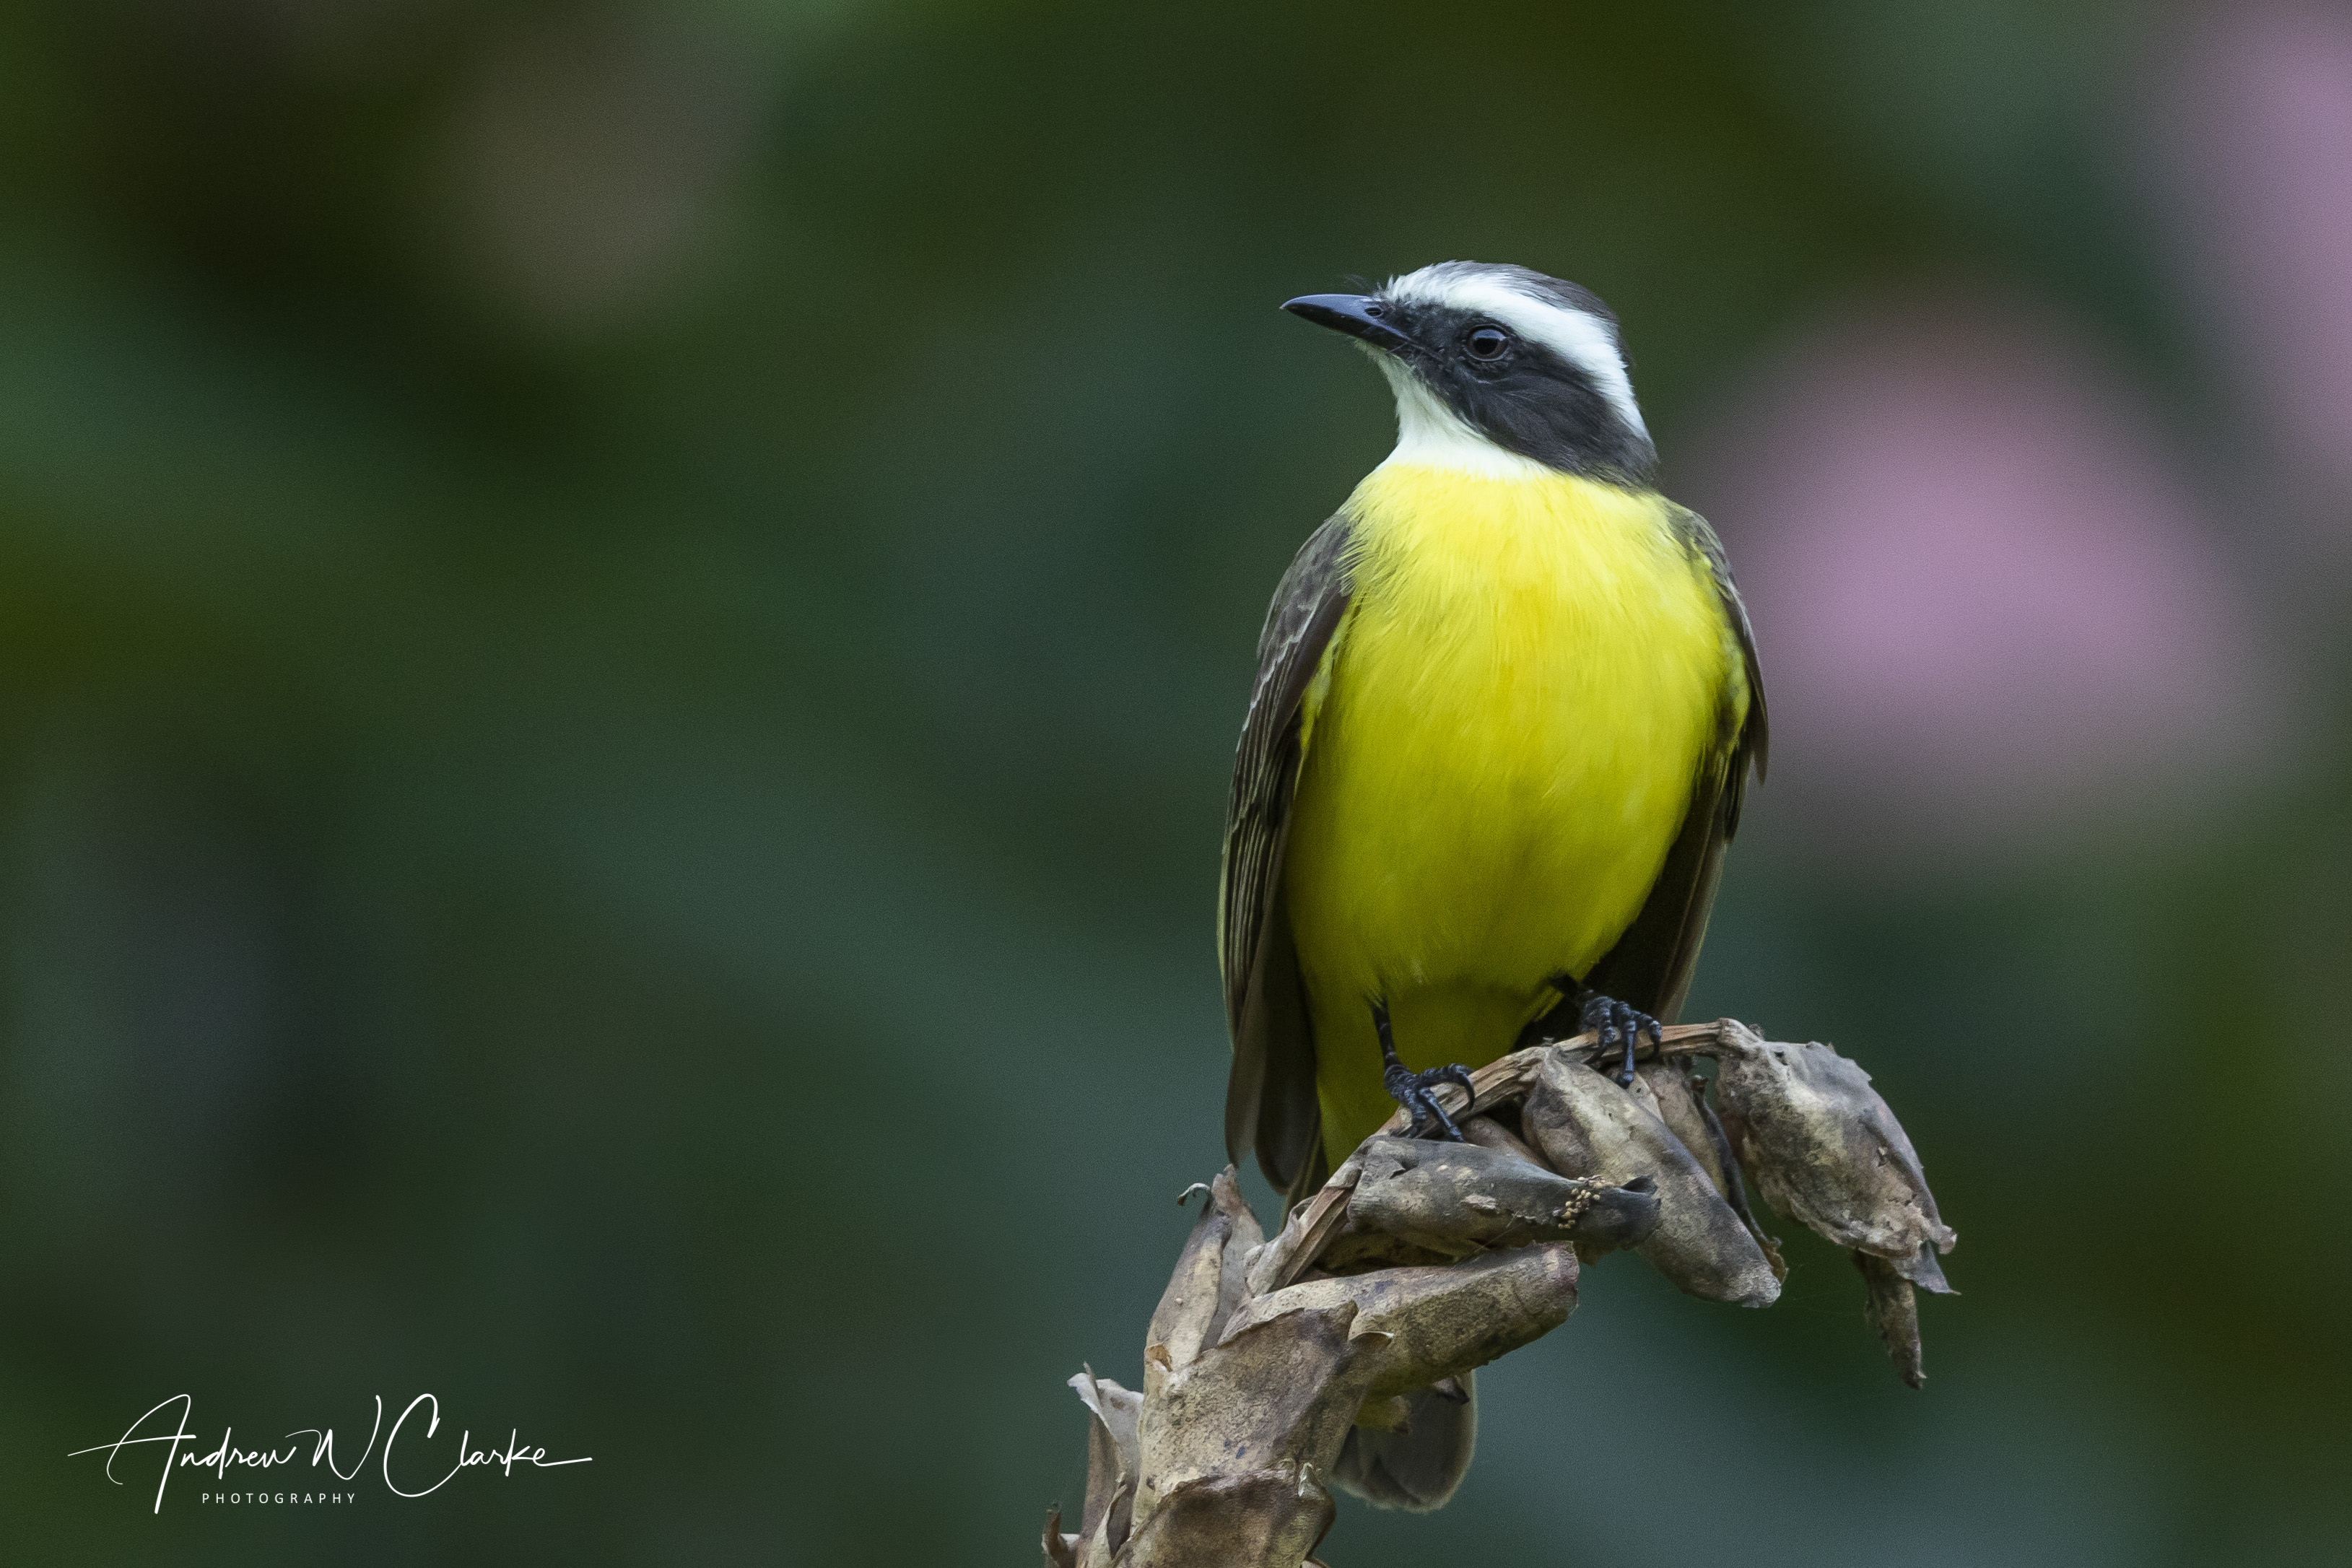 White-ringed Flycatcher